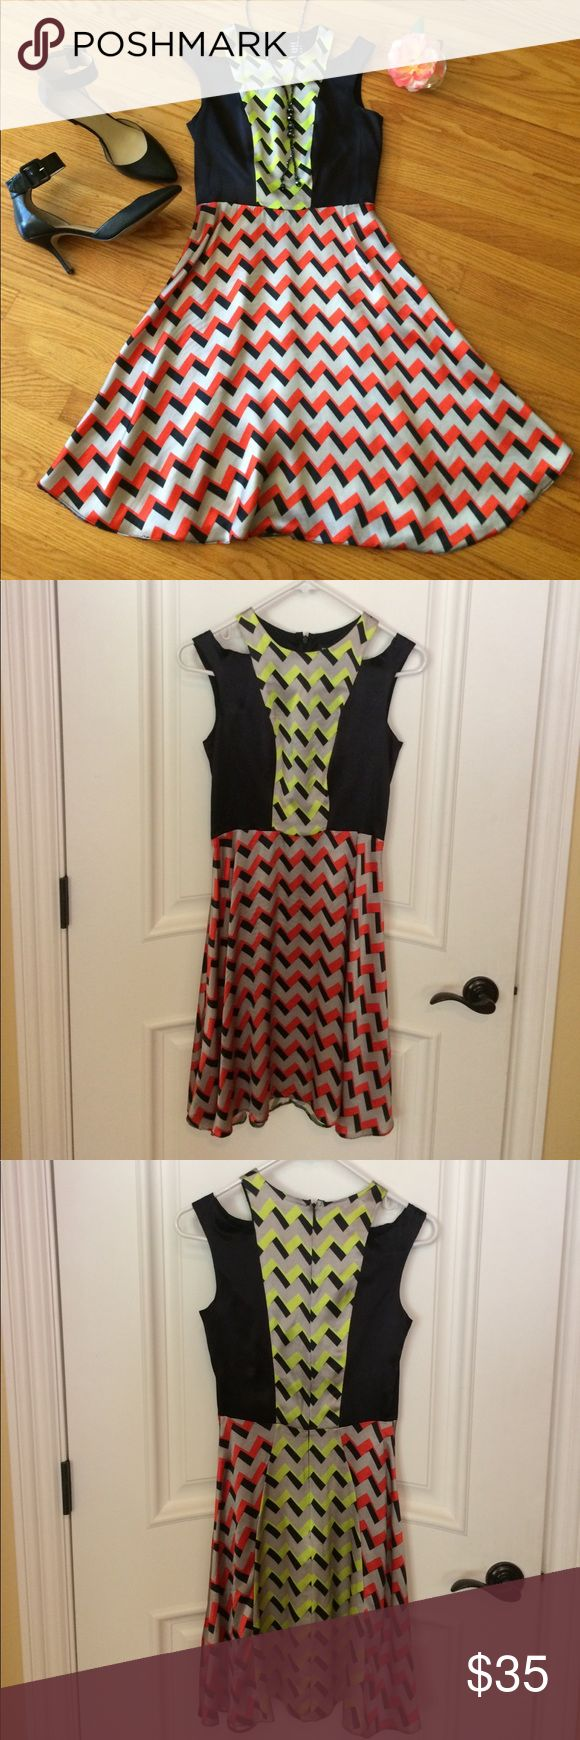 """💃 River Island (UK) Designer Neon Dress Misses 6! Beautiful Black, Gray, Neon Orange & Neon Green Dress by River Island Design Forum! UK Size 8 Converts to US Size 6 Also - See Photo showing Tape Measurements. This eye-catching piece has beautiful Shoulder Cut-Outs, & a Pretty Flare at the Bottom of the Dress. Very figure-flattering Zig-Zag Design. Zipper down back. 100% Viscose (no lining). Above knee on me (5'7""""). This Dress can easily go from Work to Happy Hour! Thank you for 🛒 here…"""